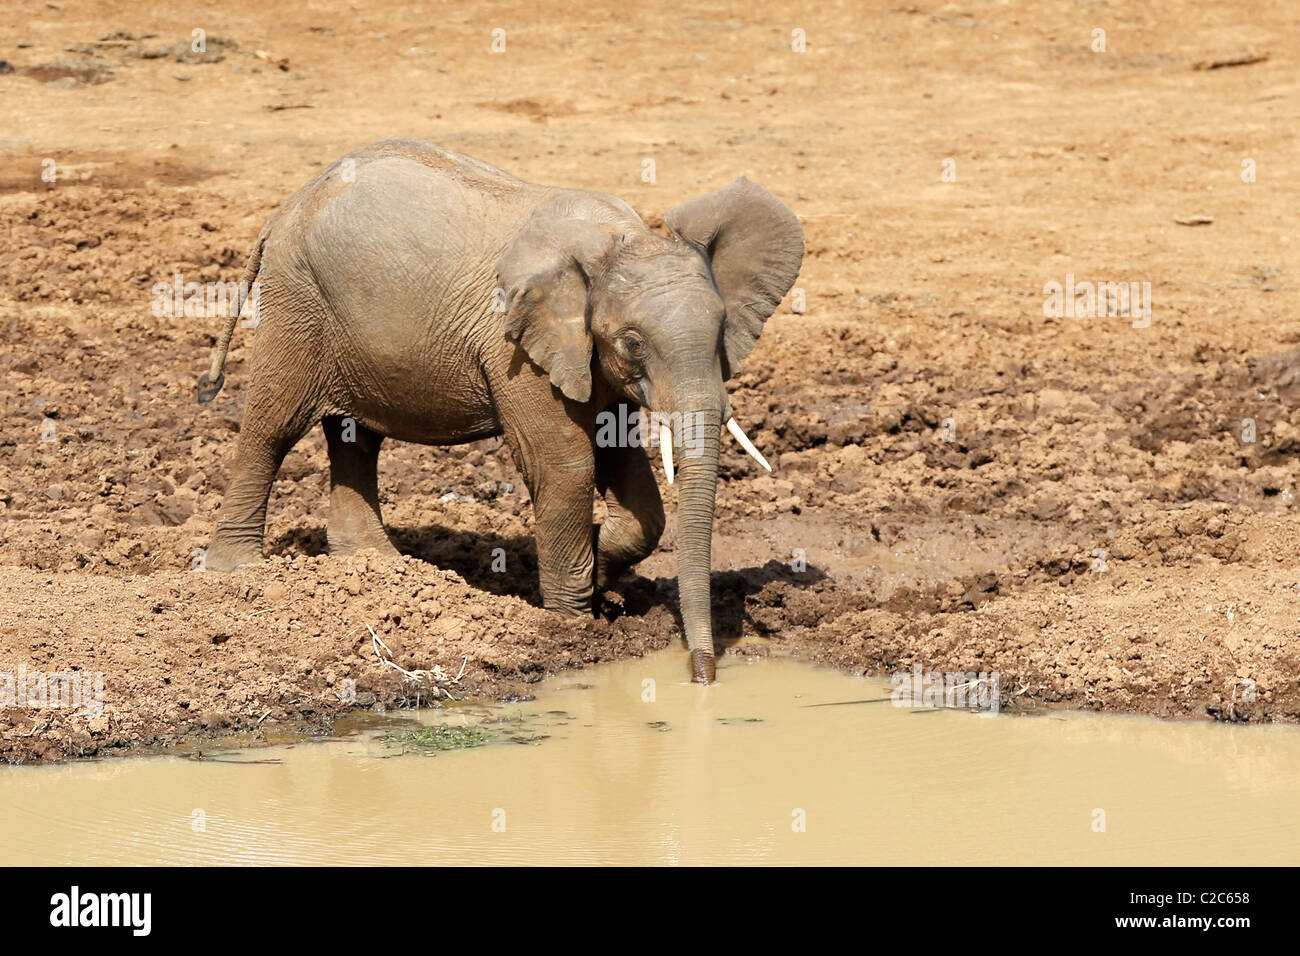 An African Elephant at a watering hole in Kenya - Stock Image